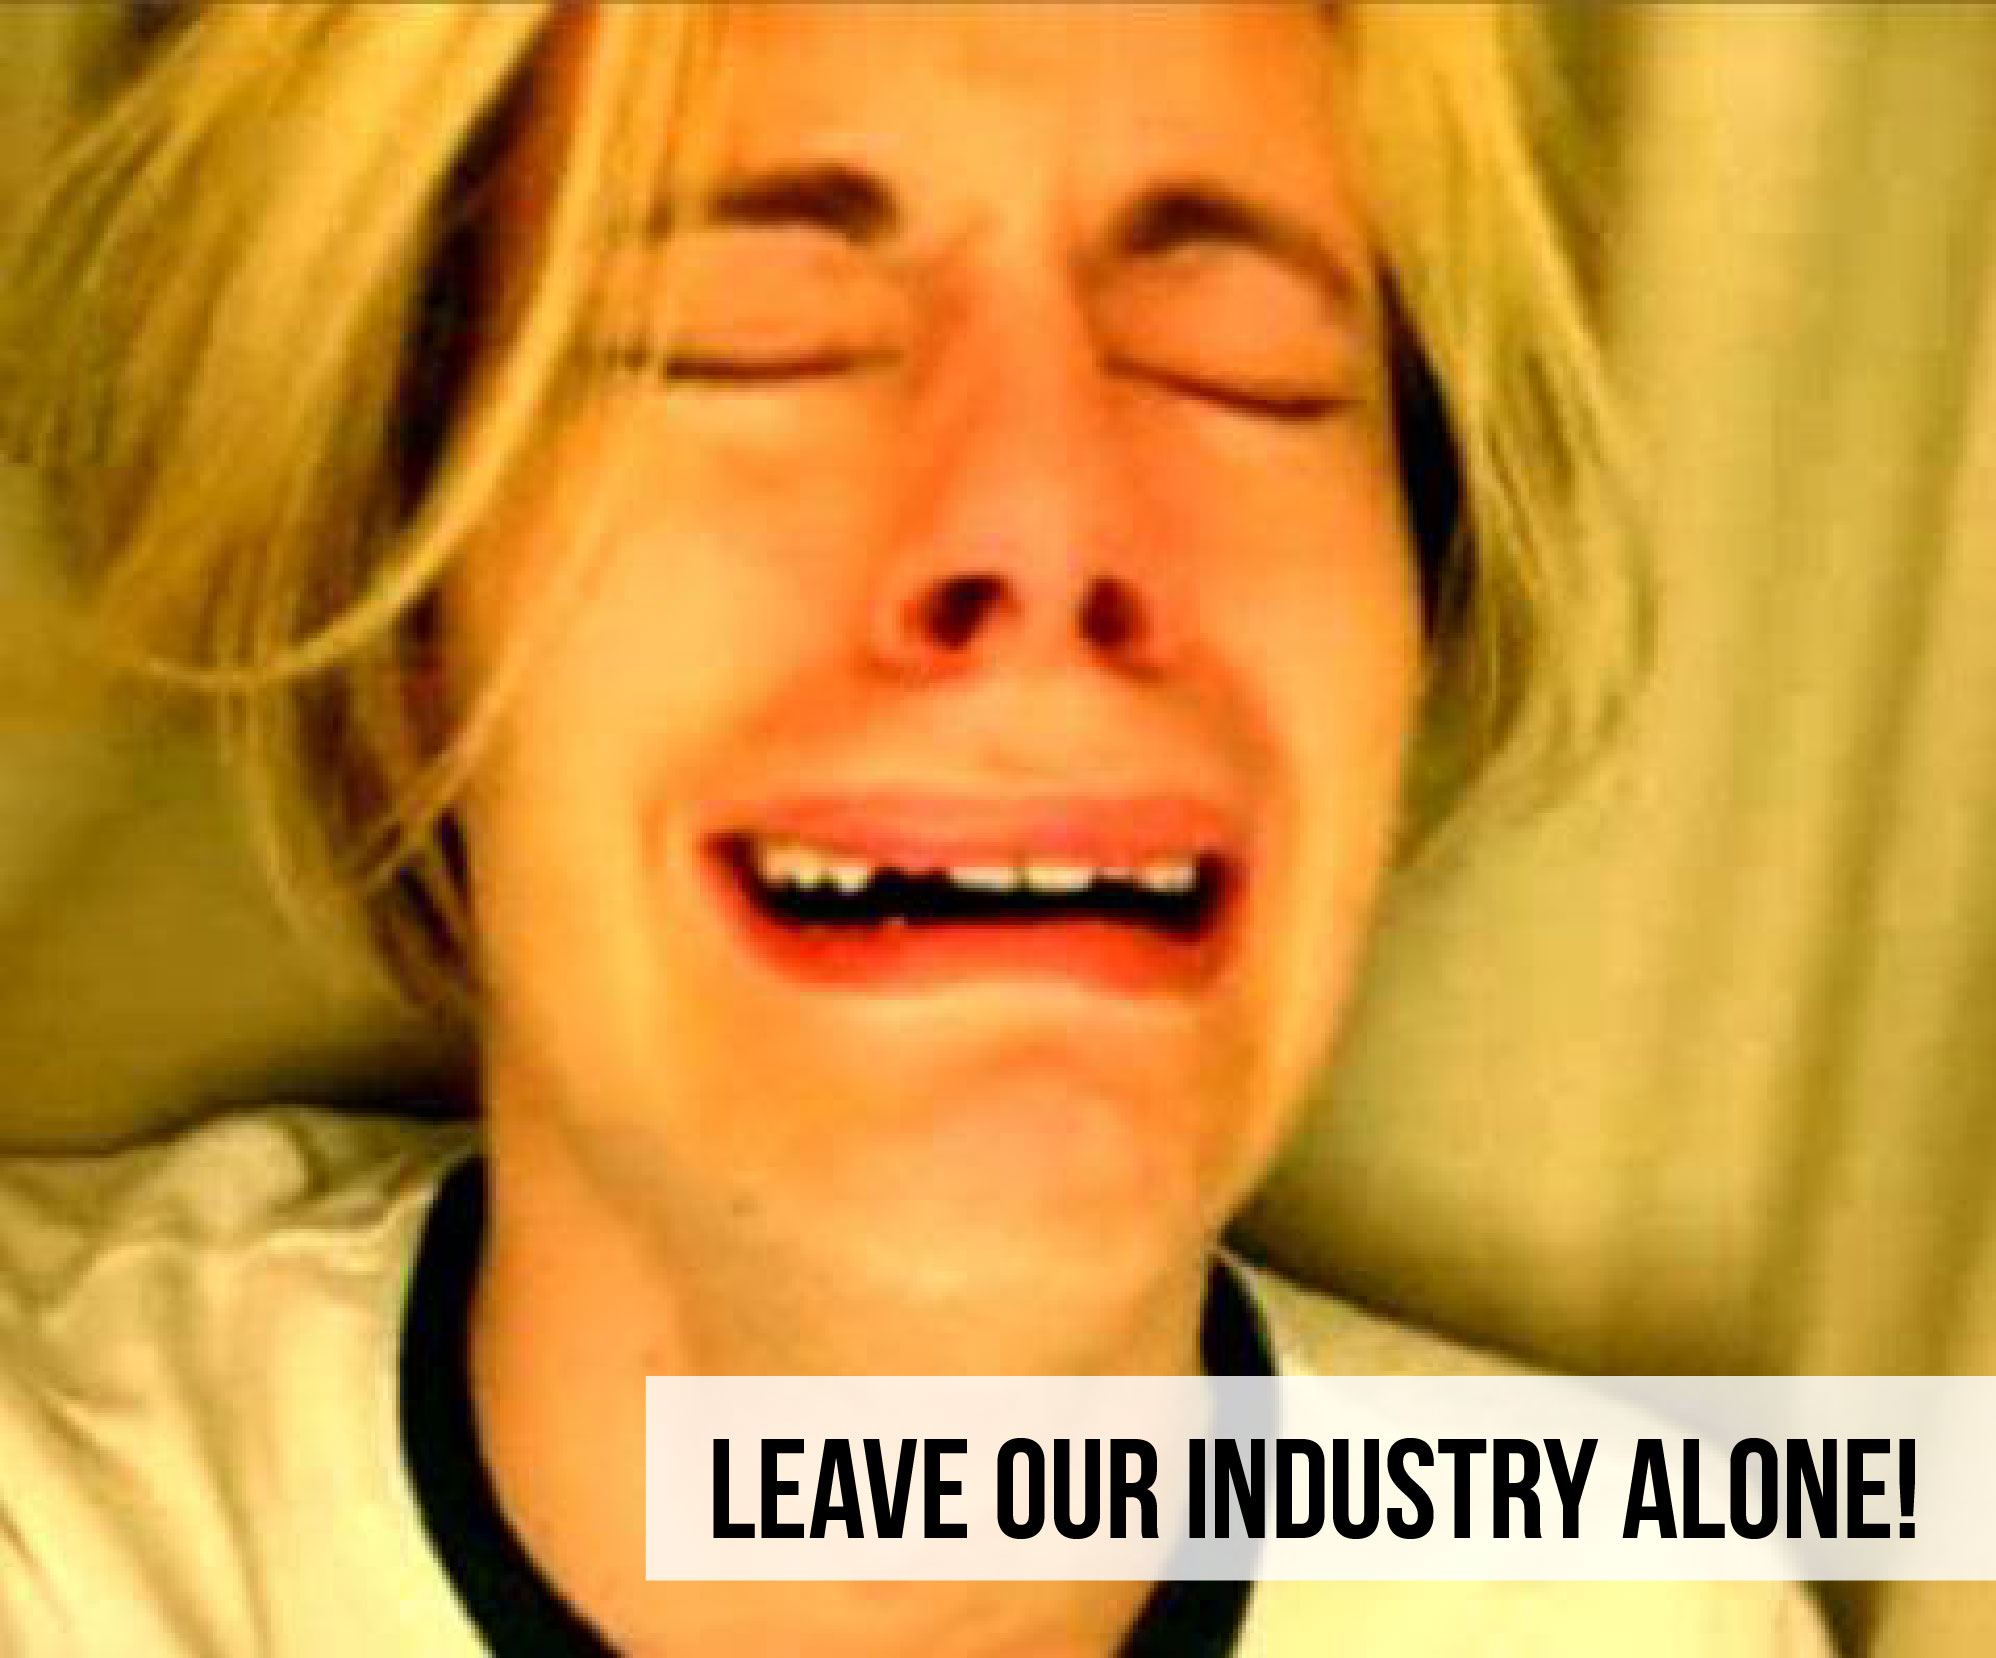 Leave our industry alone